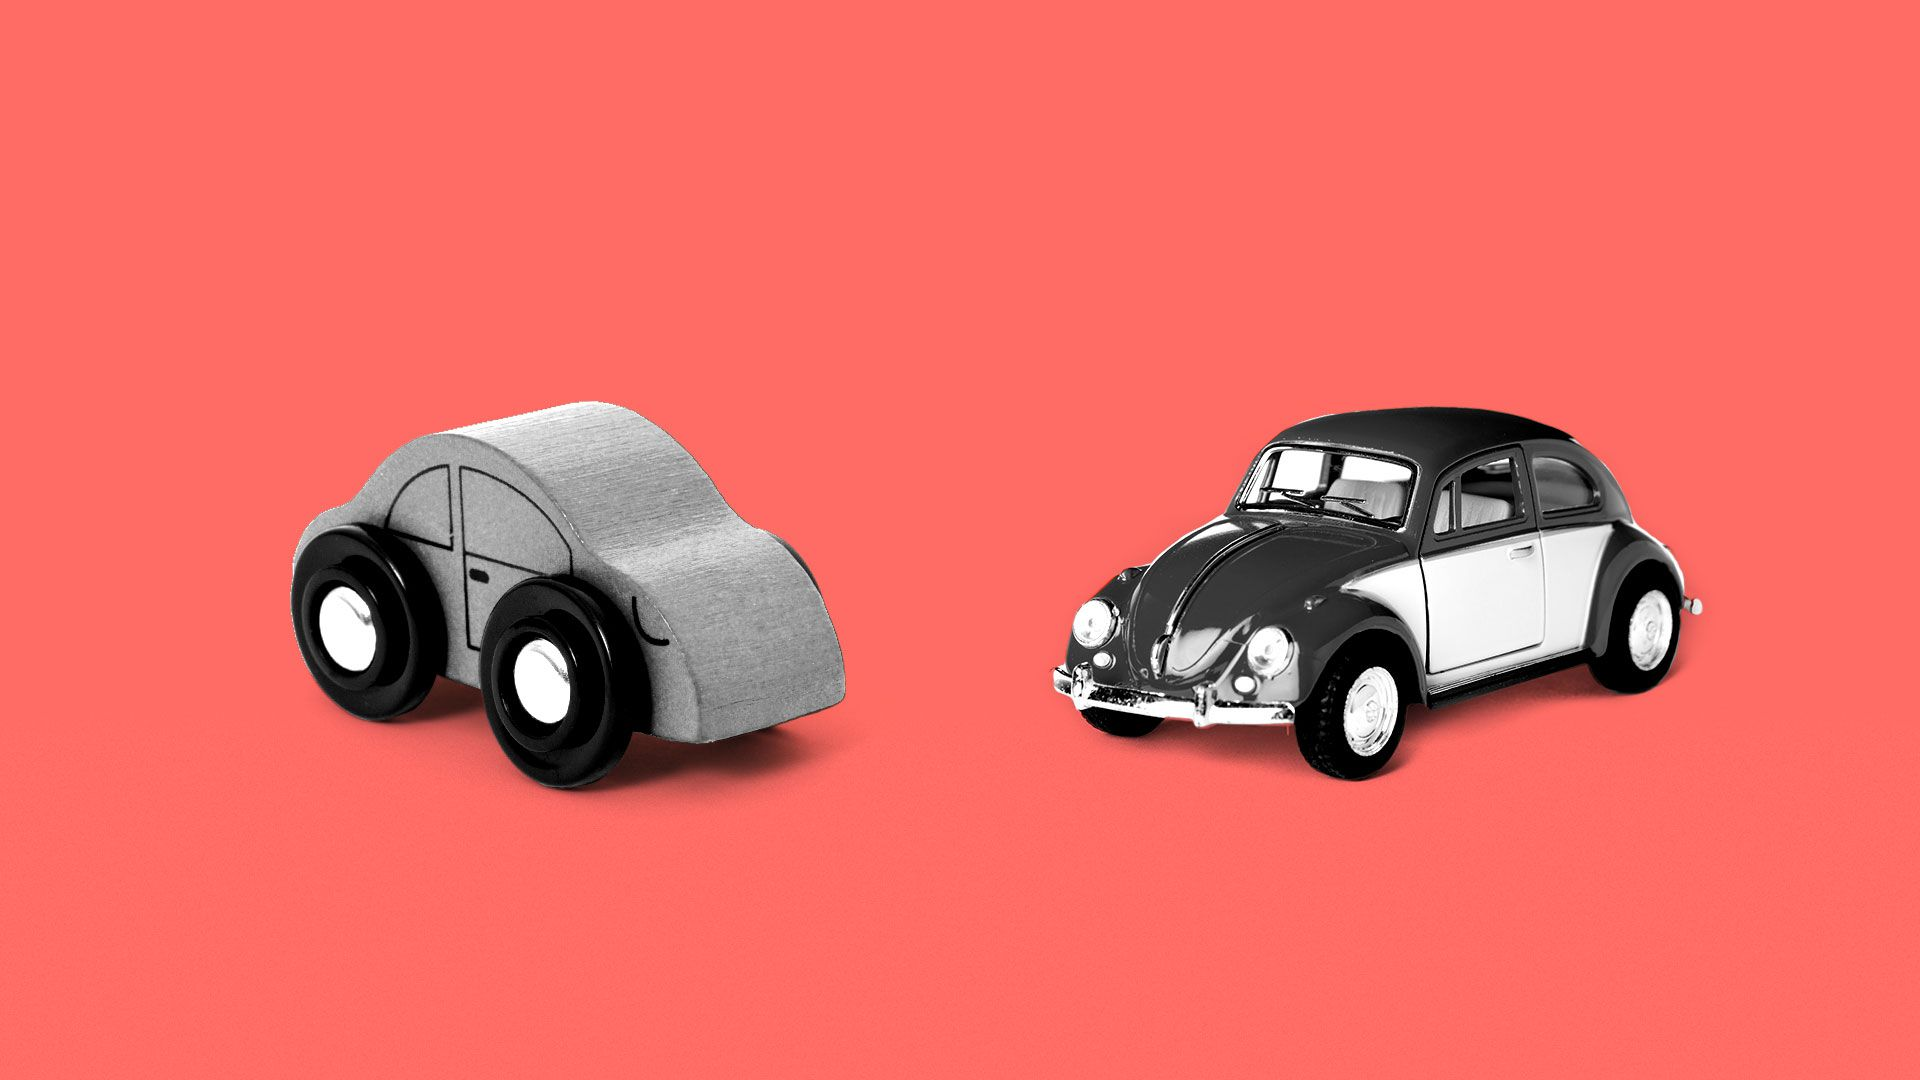 Illustration of a basic wooden toy car next to a detailed metallic toy car.